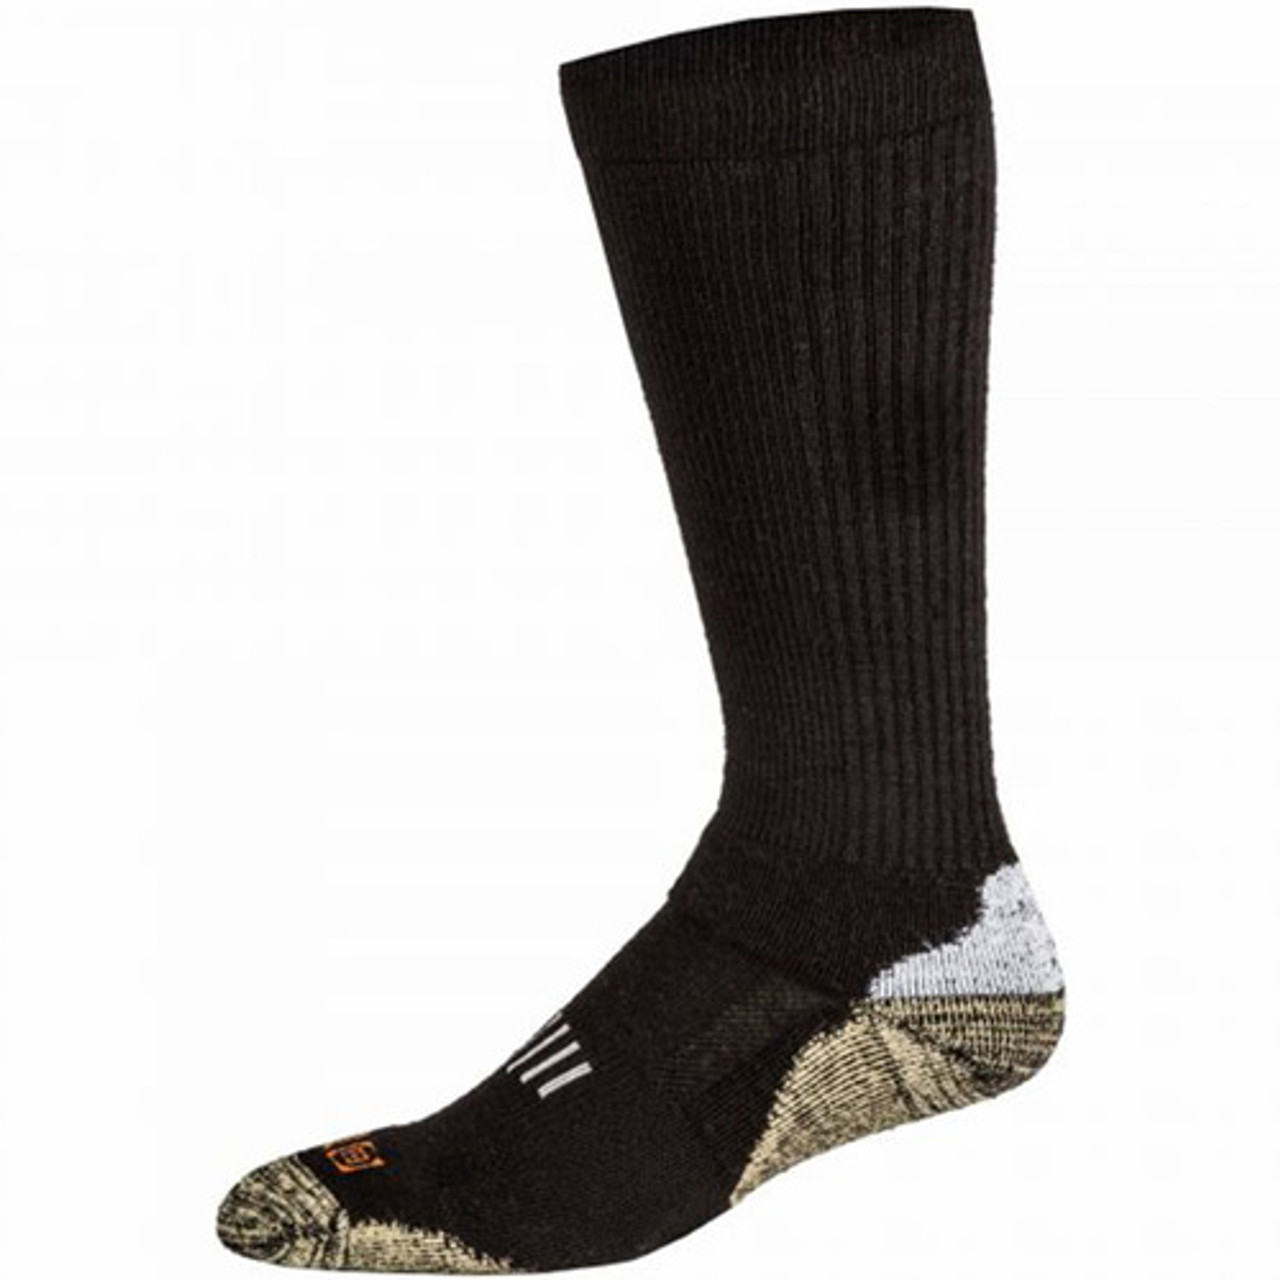 5.11 TACTICAL 59048 Boot Socks,9 In,Khaki,Mens,L